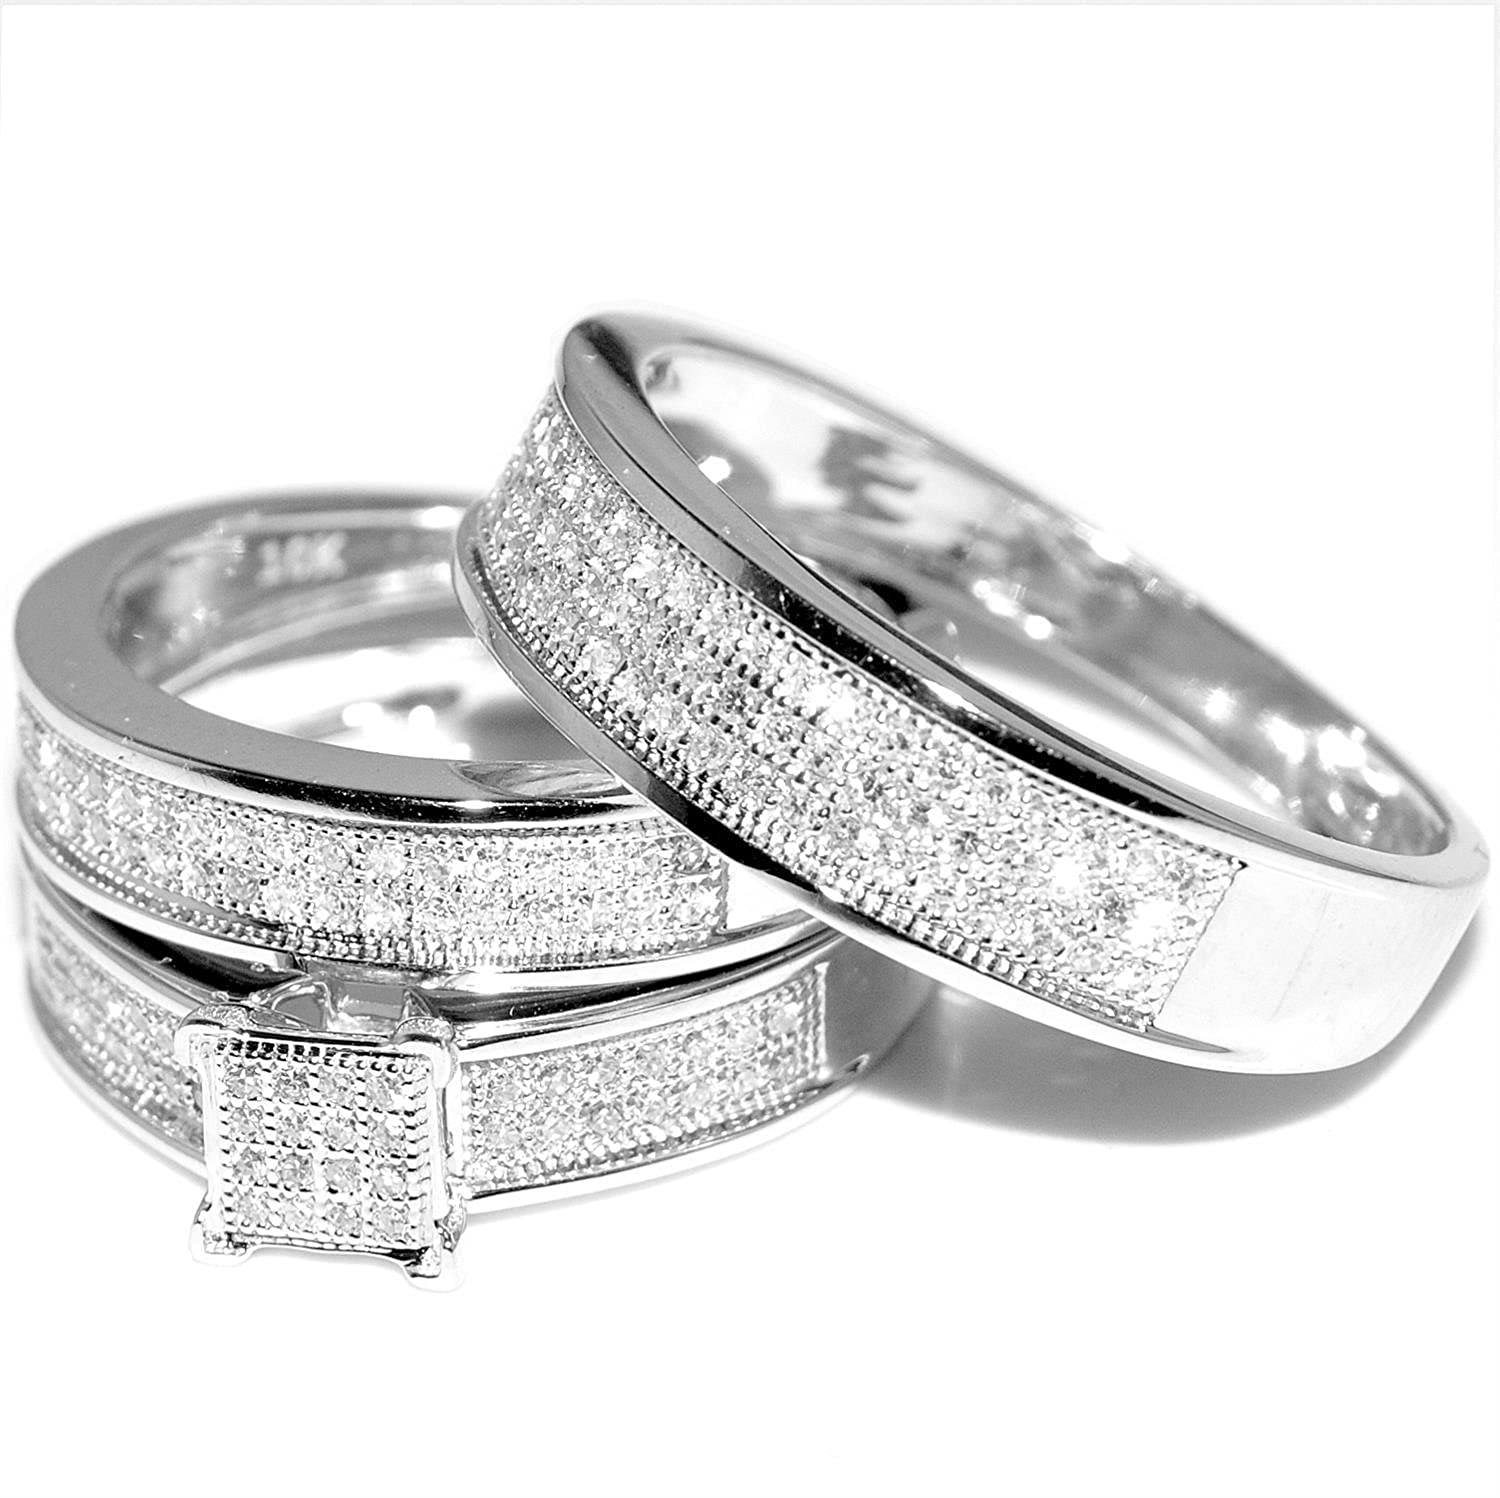 white gold trio wedding set mens womens wedding rings matching 040cttw diamondamazoncom - Cheap White Gold Wedding Rings